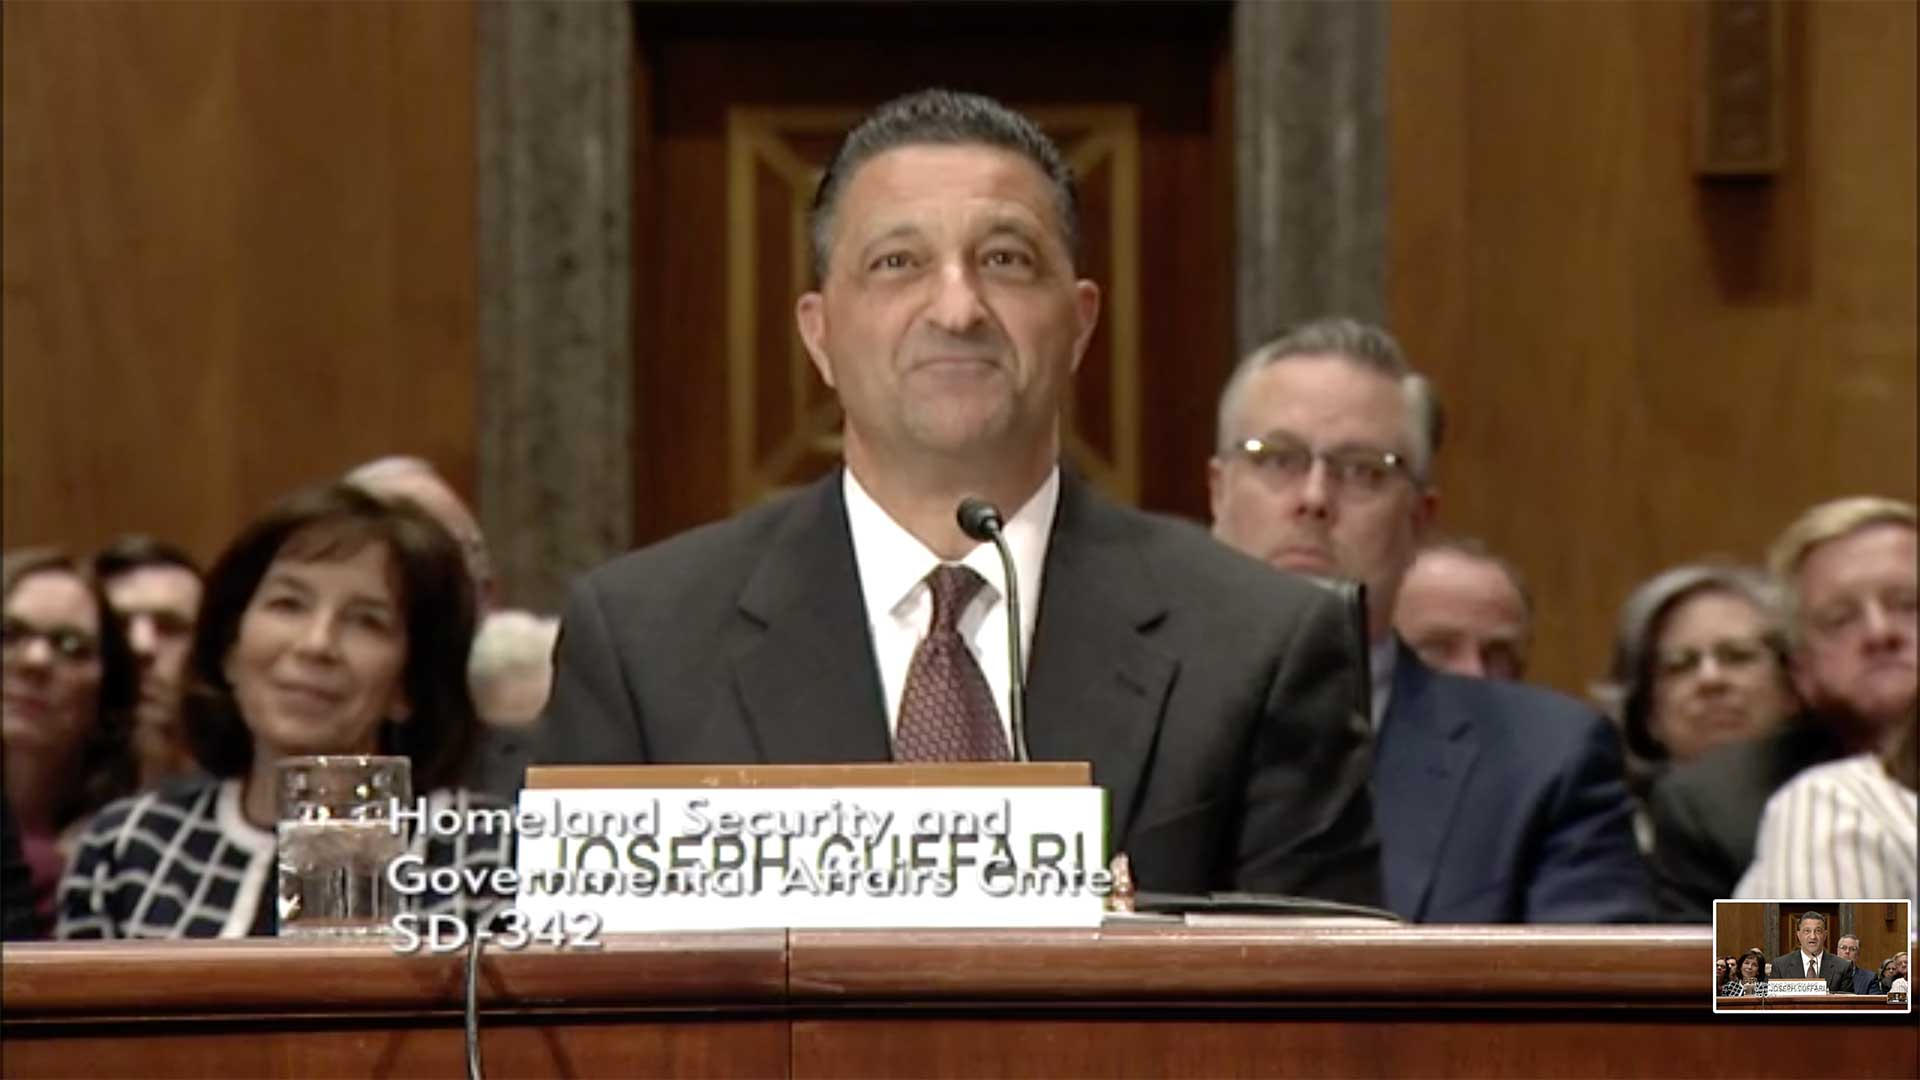 Still image from video of Joseph Cuffari at his nomination hearing for inspector General, DHS, in March 2019.